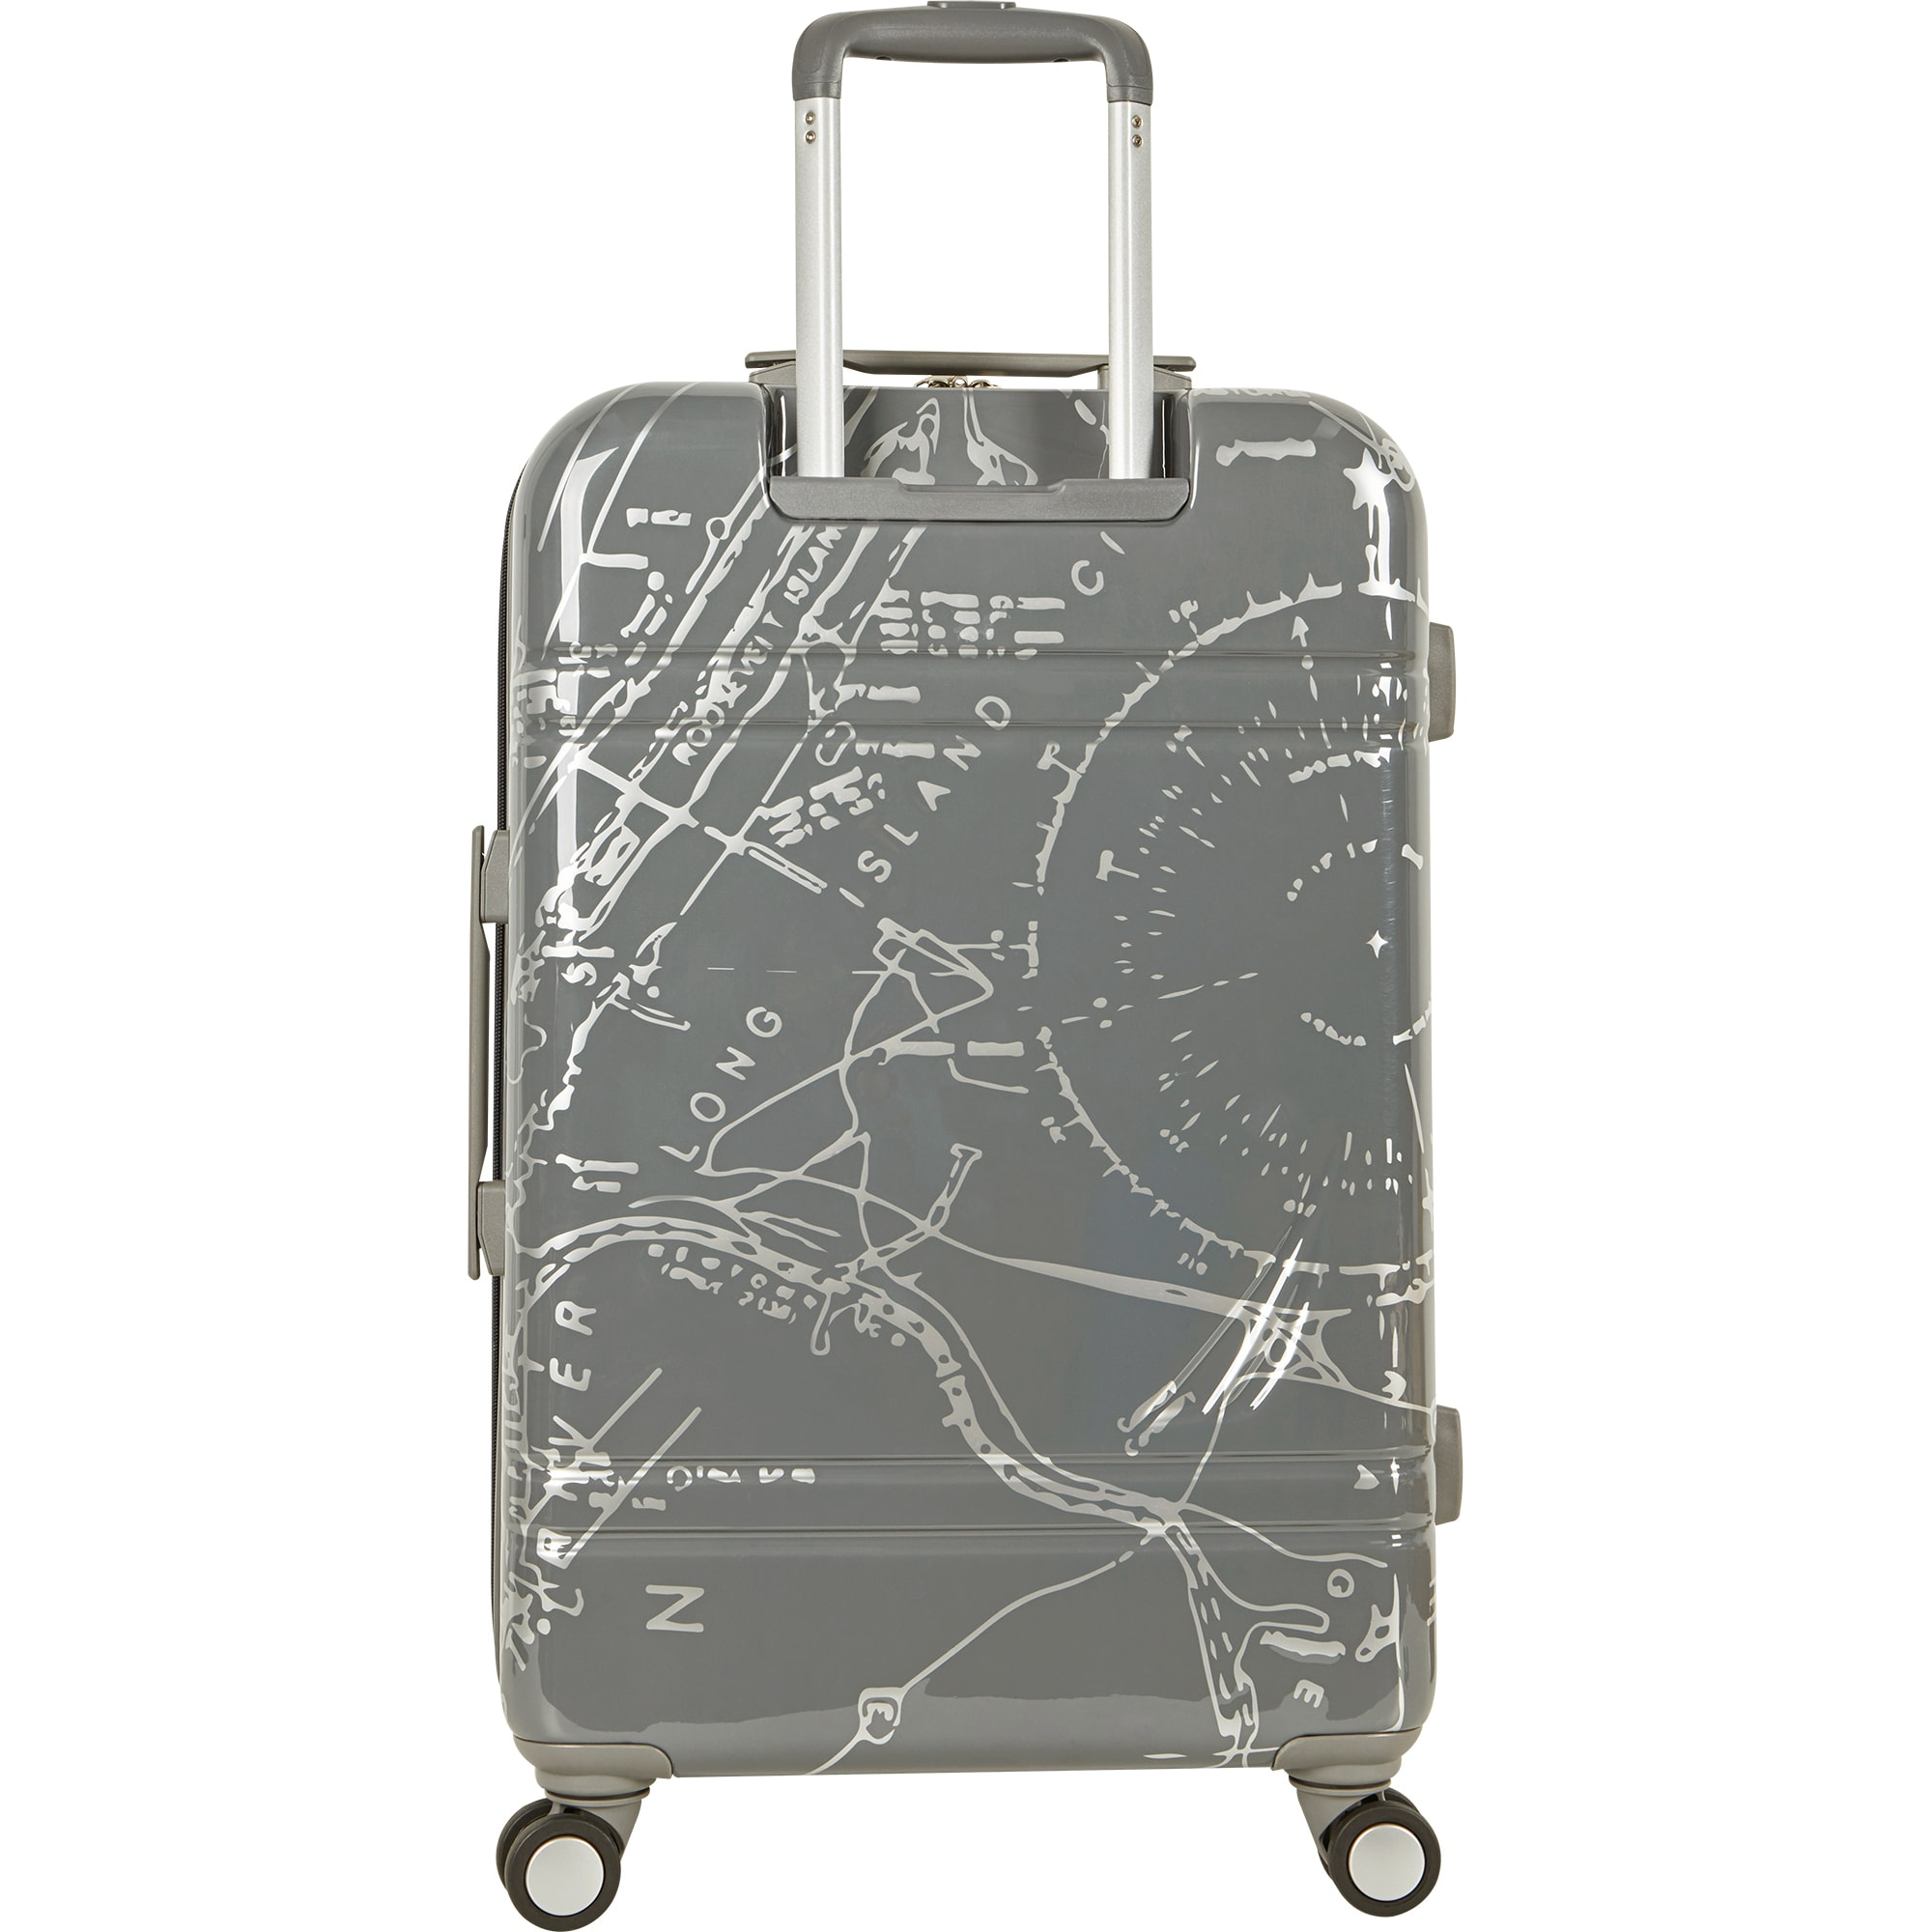 0cfddf7d9 Shop Nautica Shipyard Map 3-piece Hardside Spinner Luggage Set - Free  Shipping Today - Overstock - 20192700 - Grey